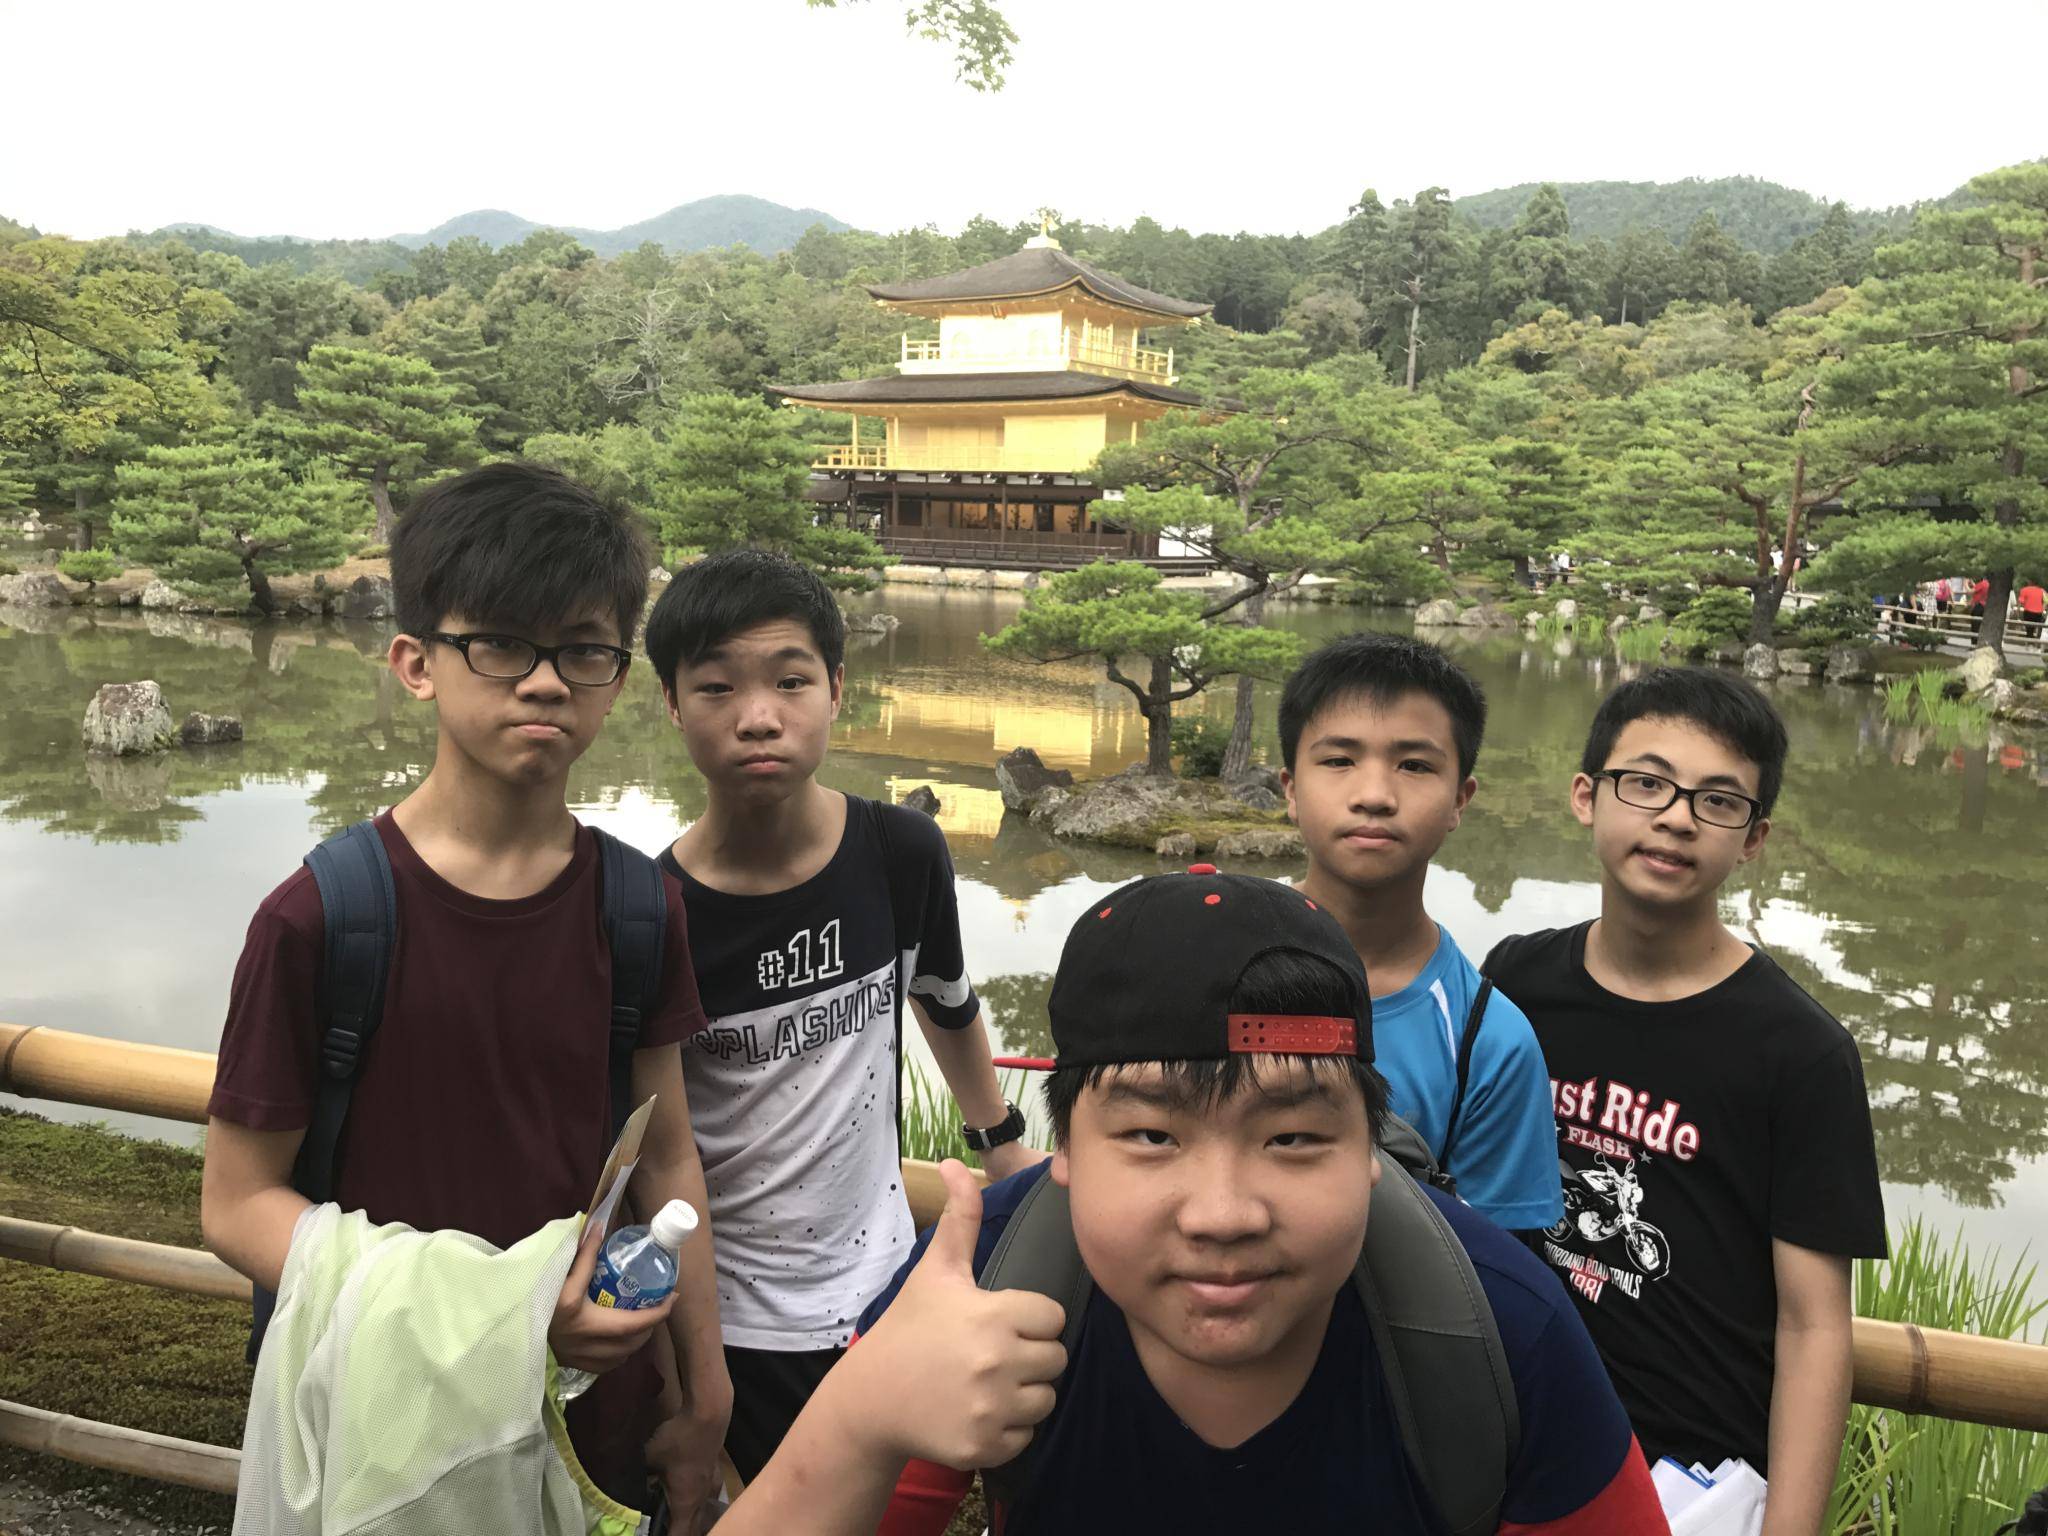 Students like the view at the Golden Pavilion.